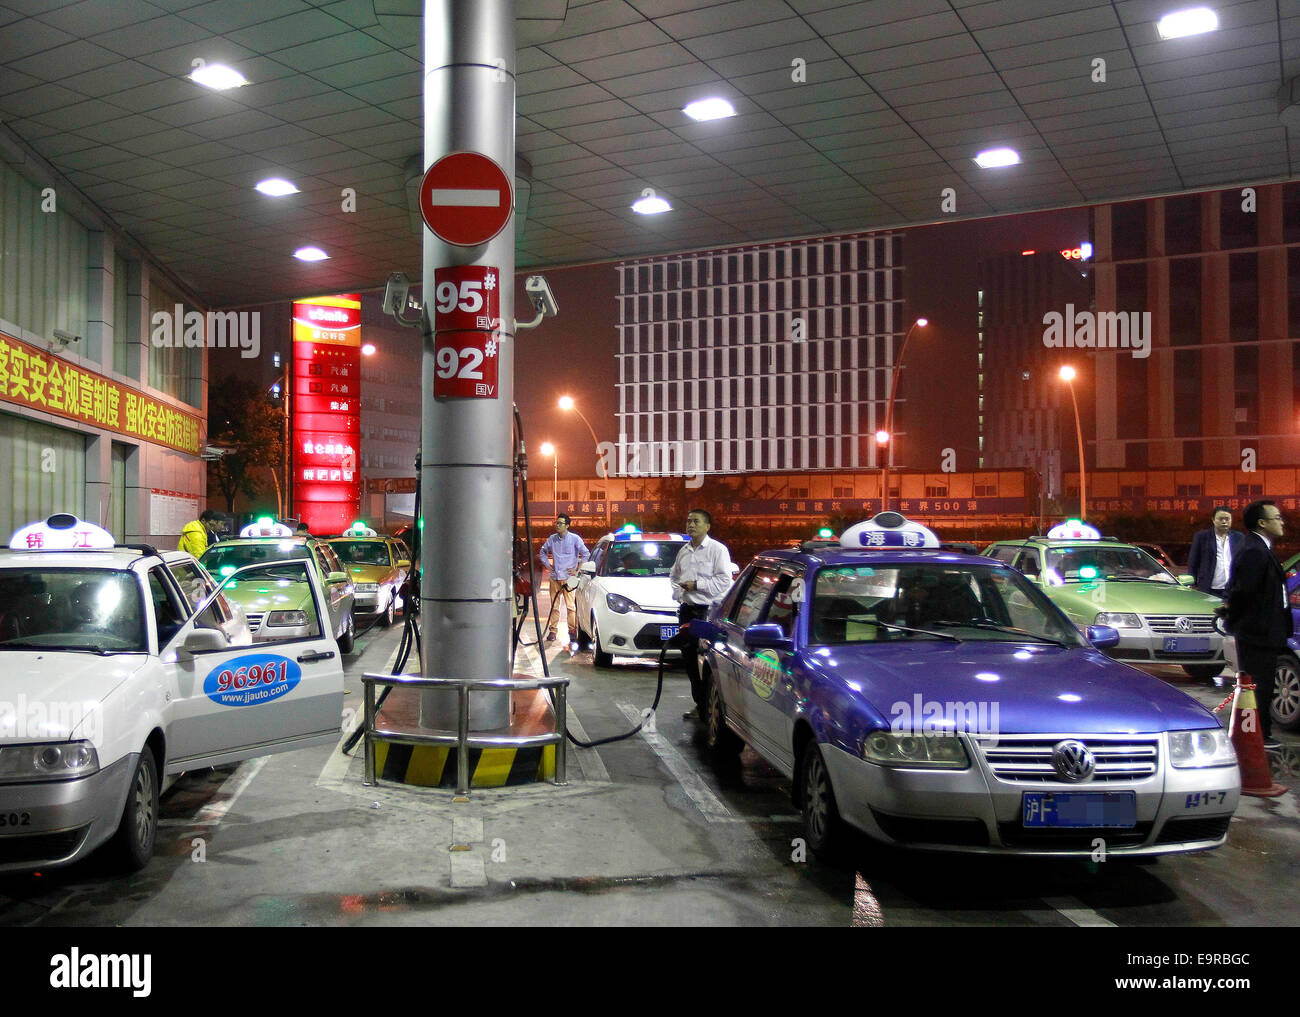 S 245 Stockfotos & S 245 Bilder - Alamy